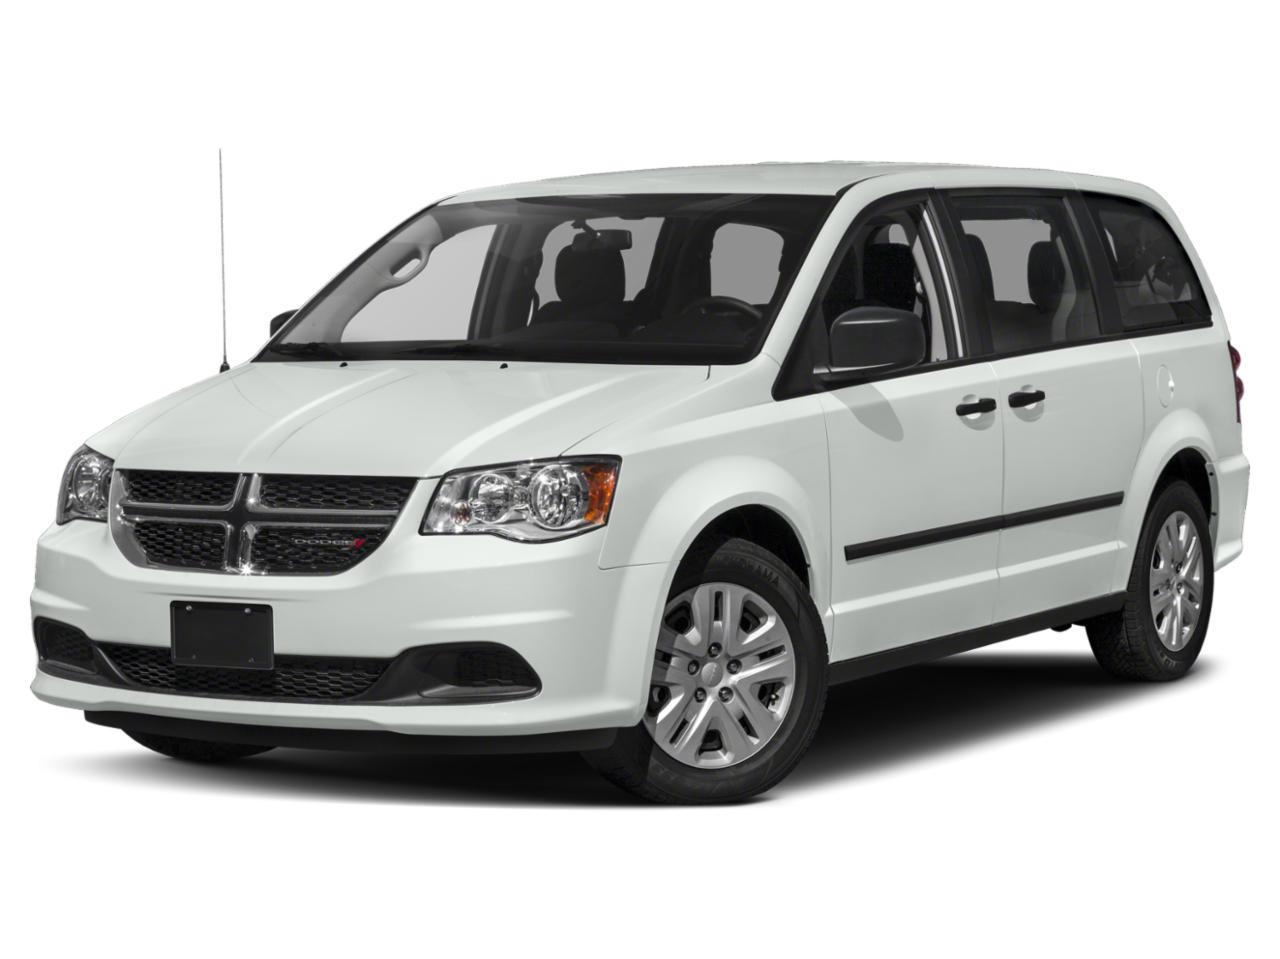 2019 Dodge Grand Caravan Vehicle Photo in Lake Bluff, IL 60044